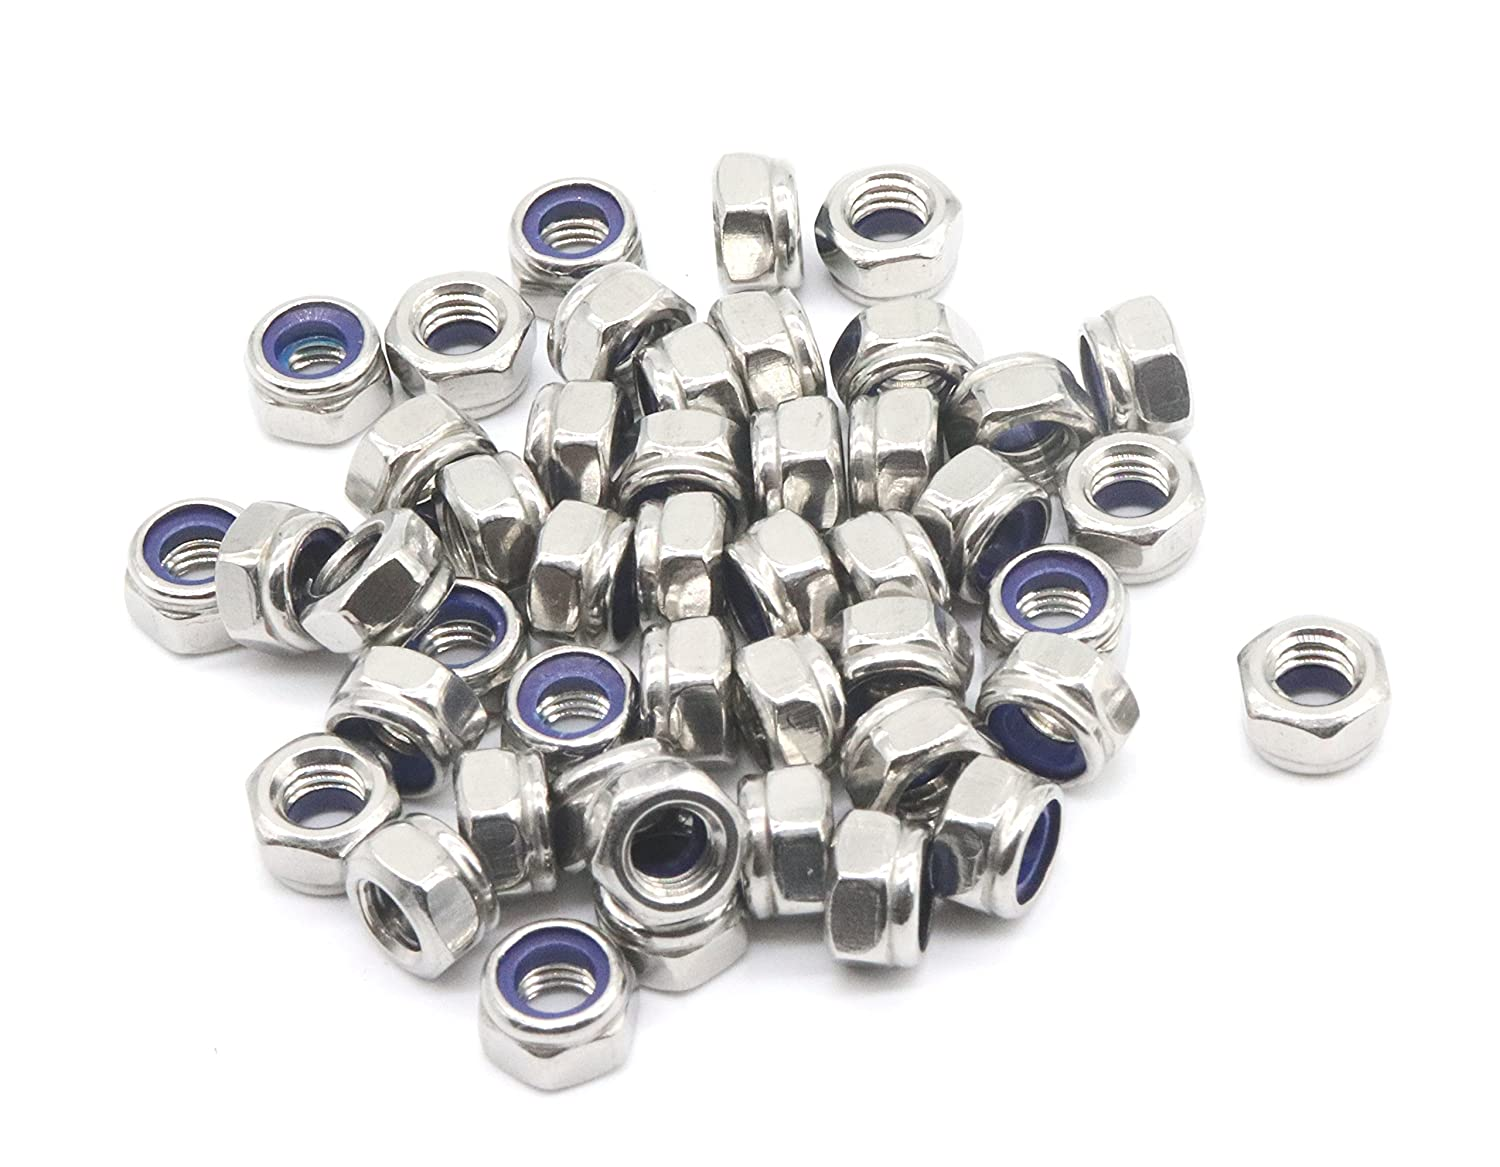 binifiMux 35Pcs M5 x 0.8mm 304 Stainless Steel Nylon Inserted Hex Lock Nuts